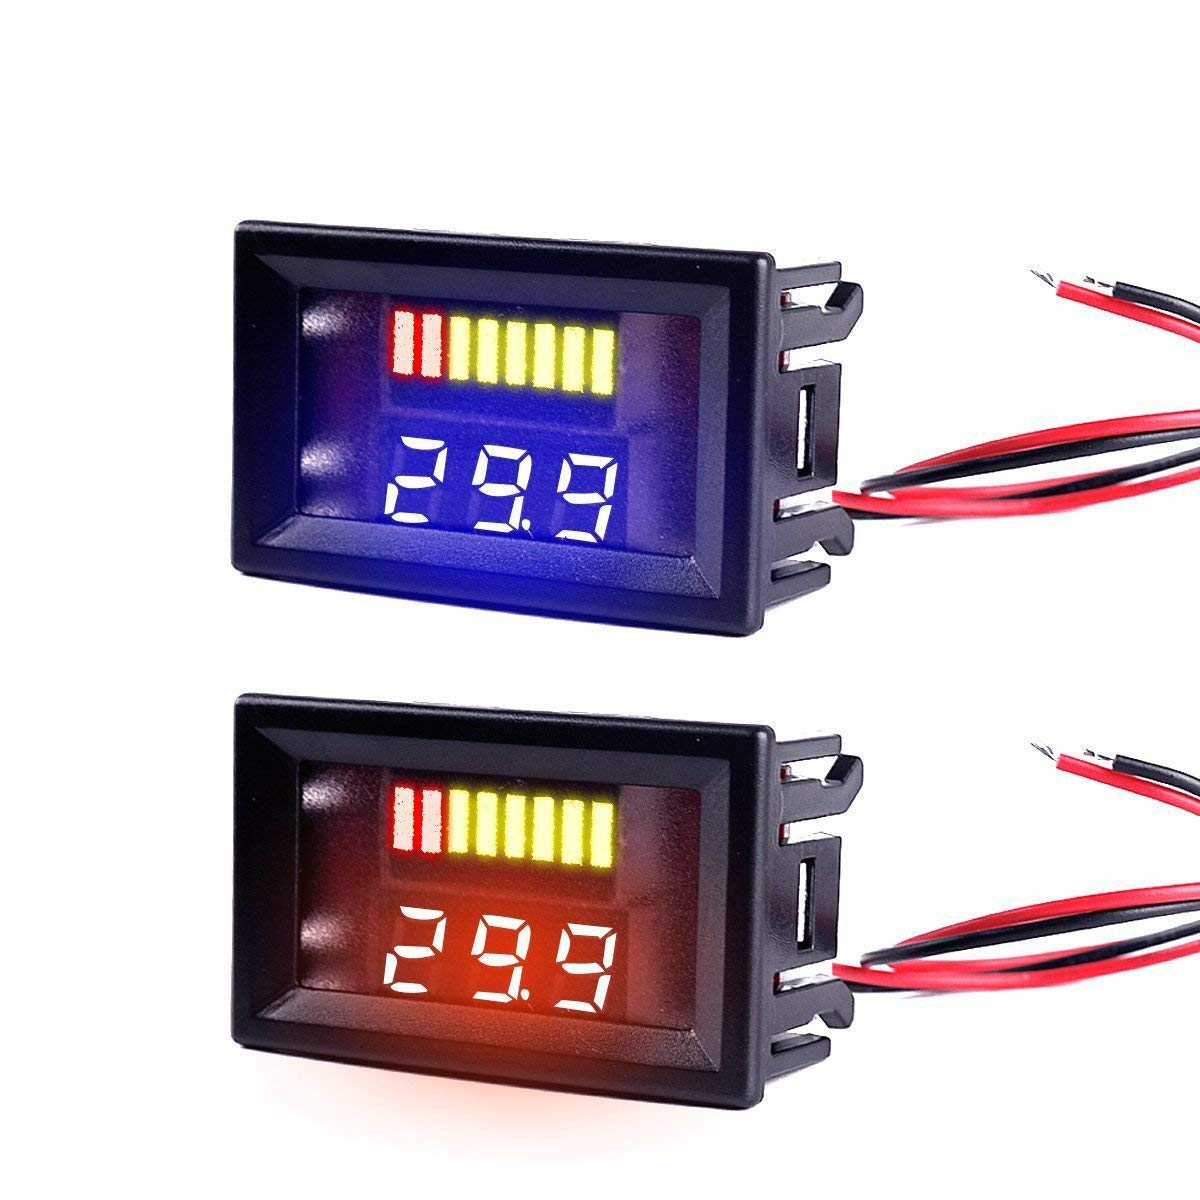 MakerHawk 4pcs Digital DC Voltmeter 0.56 inch Three-Lines 0-100V Digital Voltmeter Gauge Tester LED Display Reverse Polarity Protection and Accurate Pressure Measurement 4 Colours